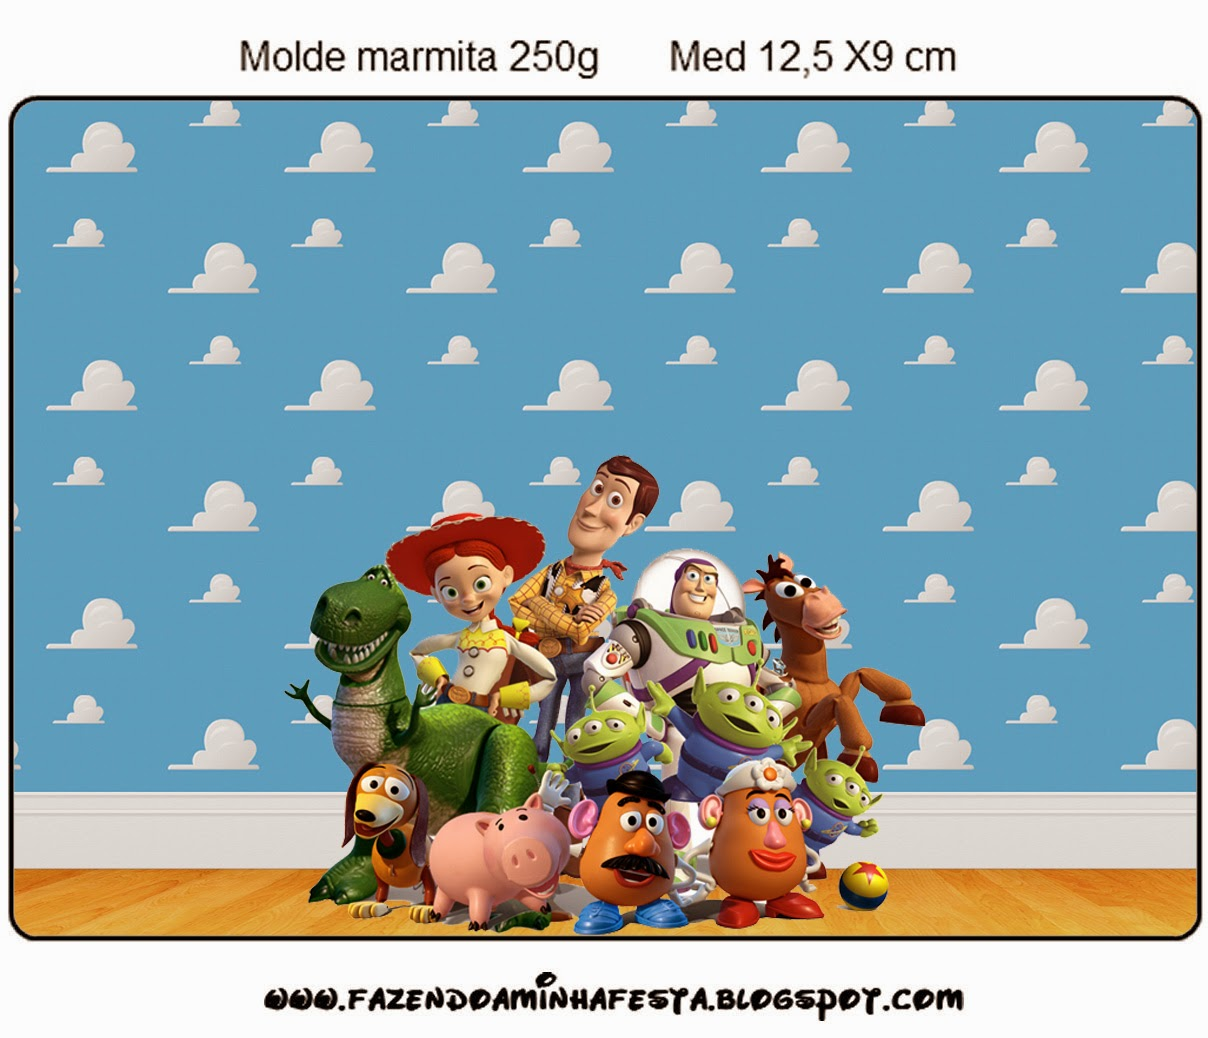 Toy story 3 free printable candy bar labels oh my - Imagenes de nubes infantiles ...